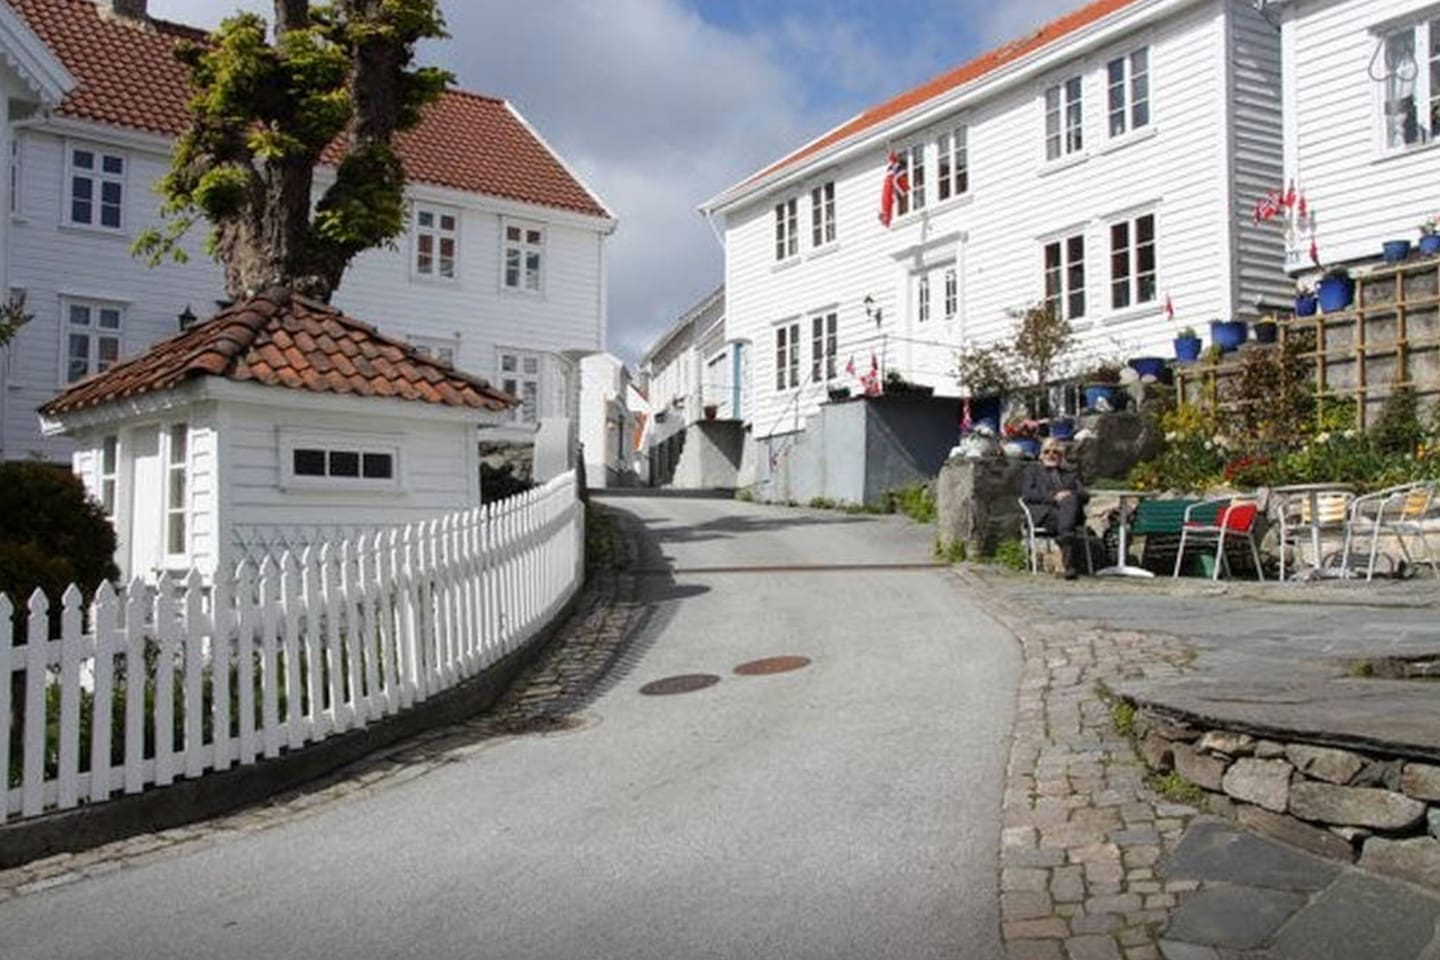 The apartment is located in the center of the old town, about 50 meters up this street.